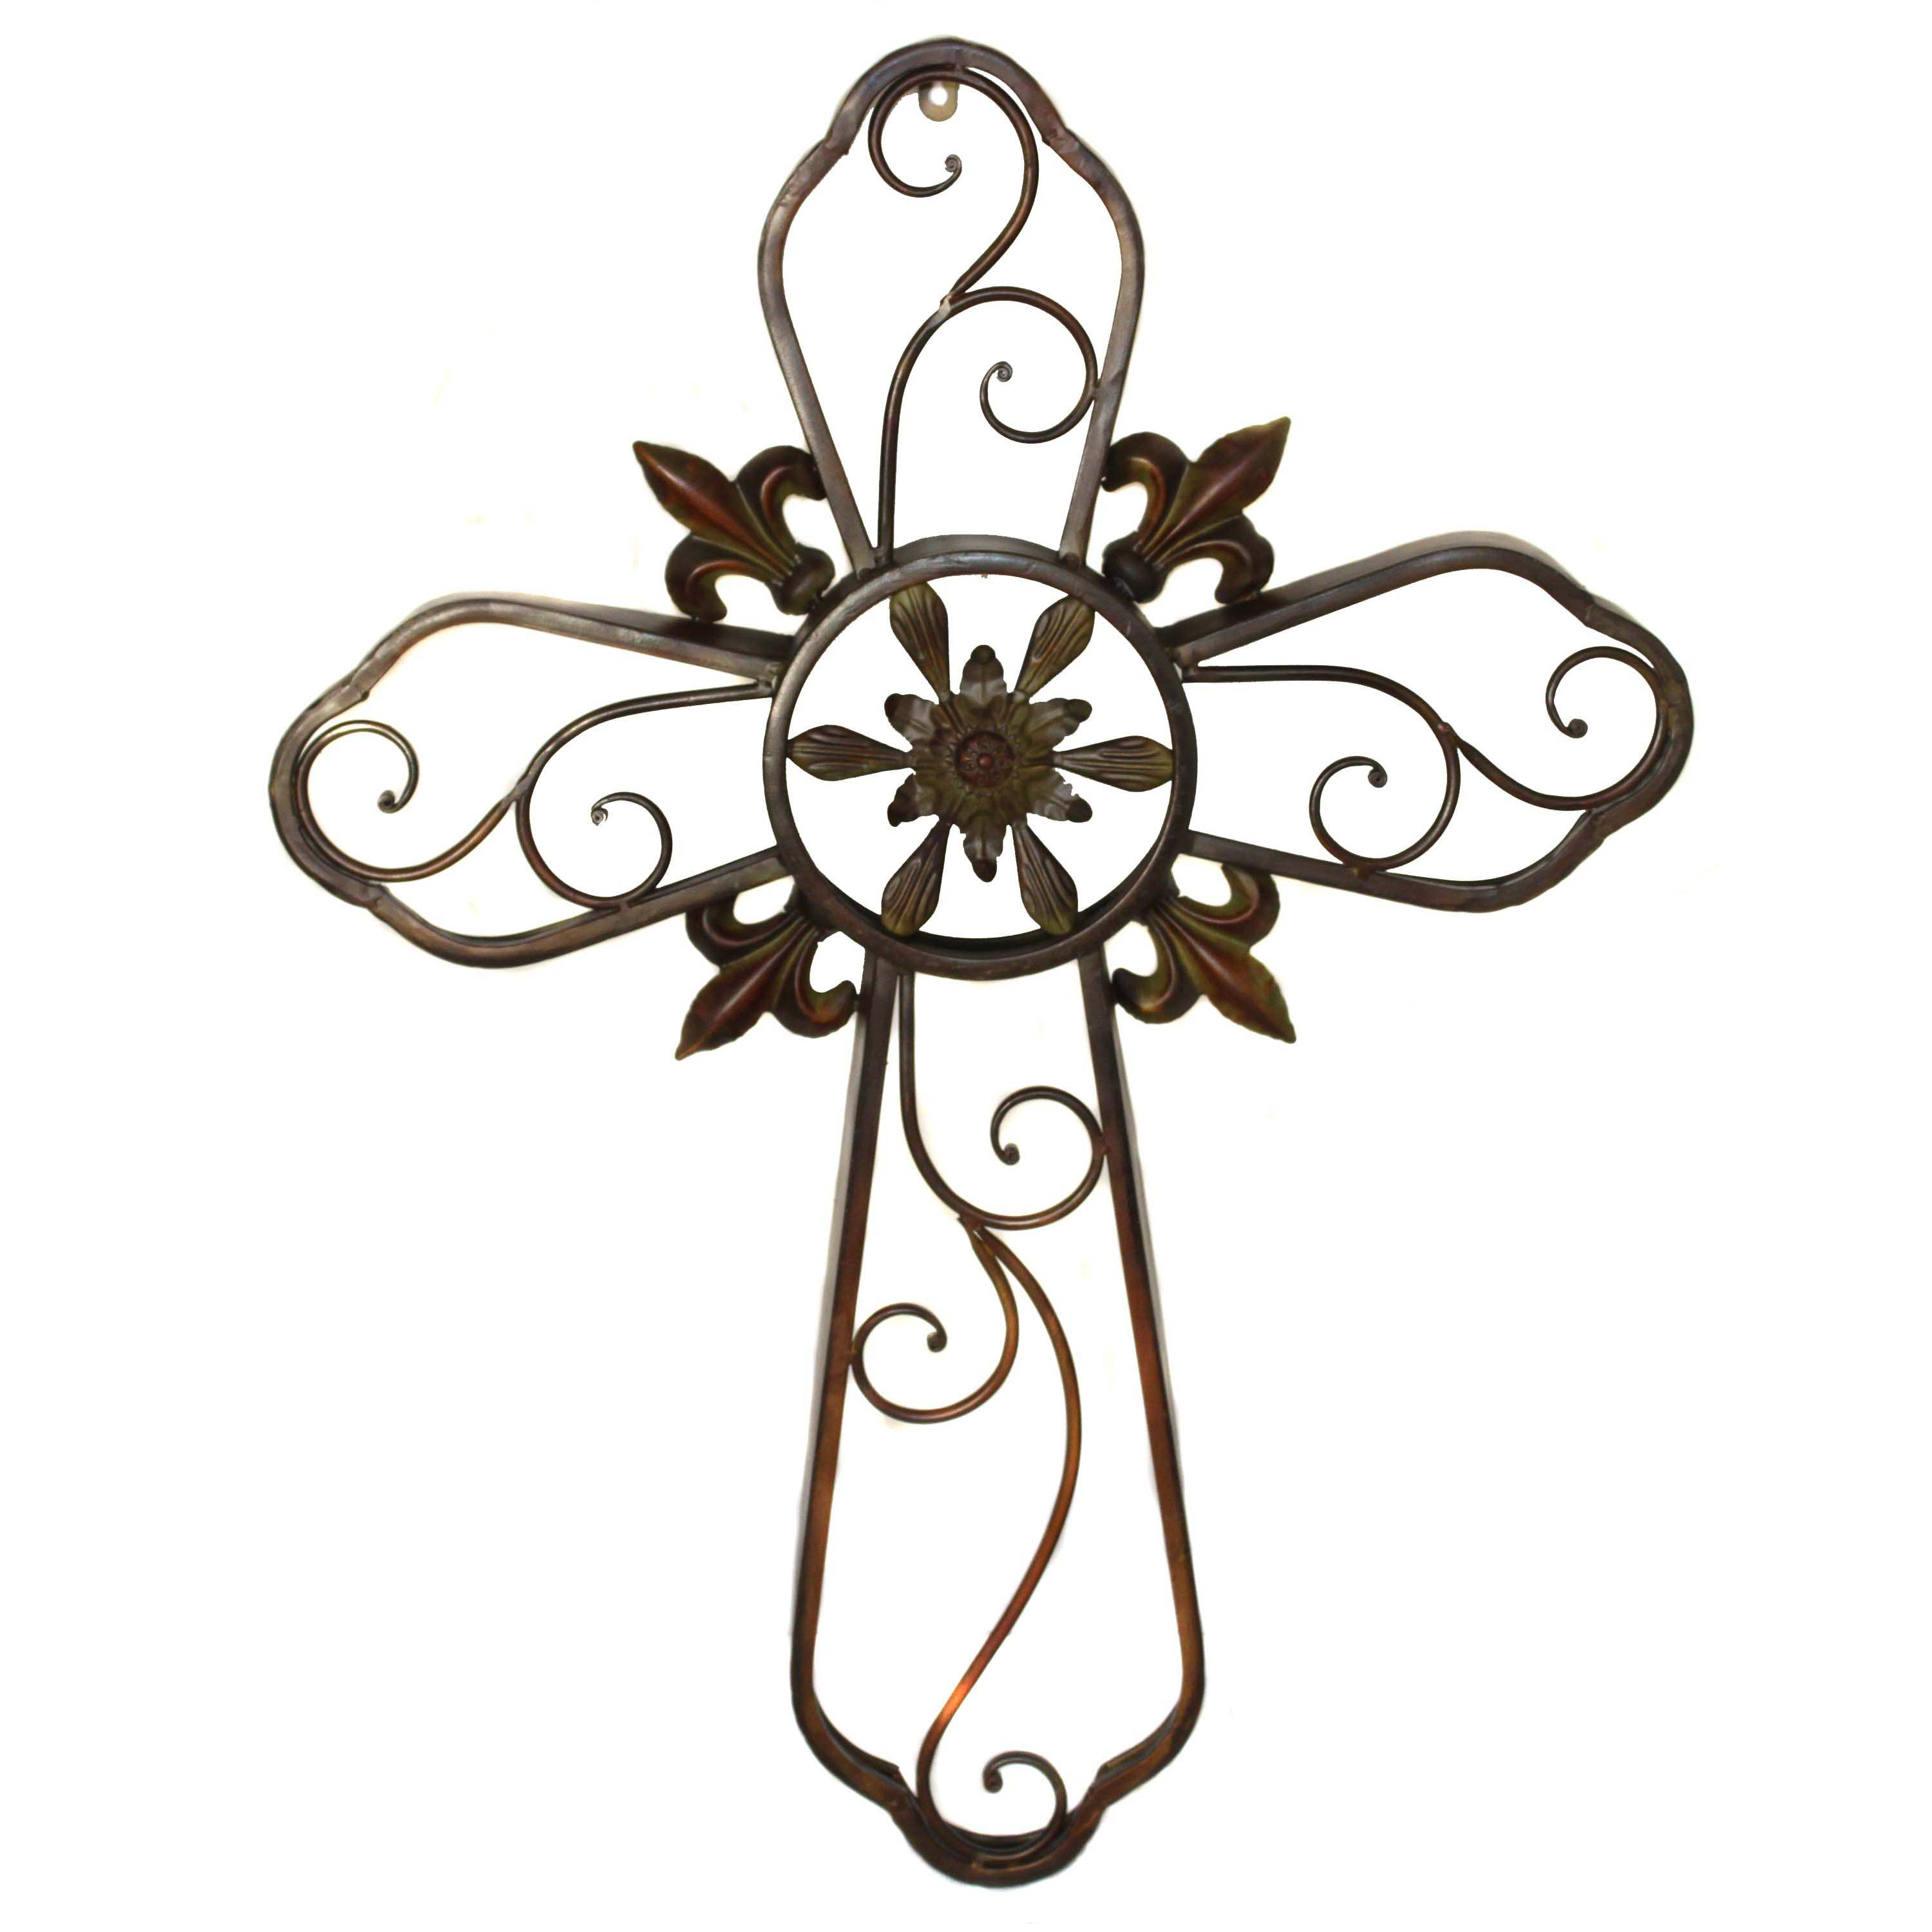 Metal Cross Wall Art Elitflat